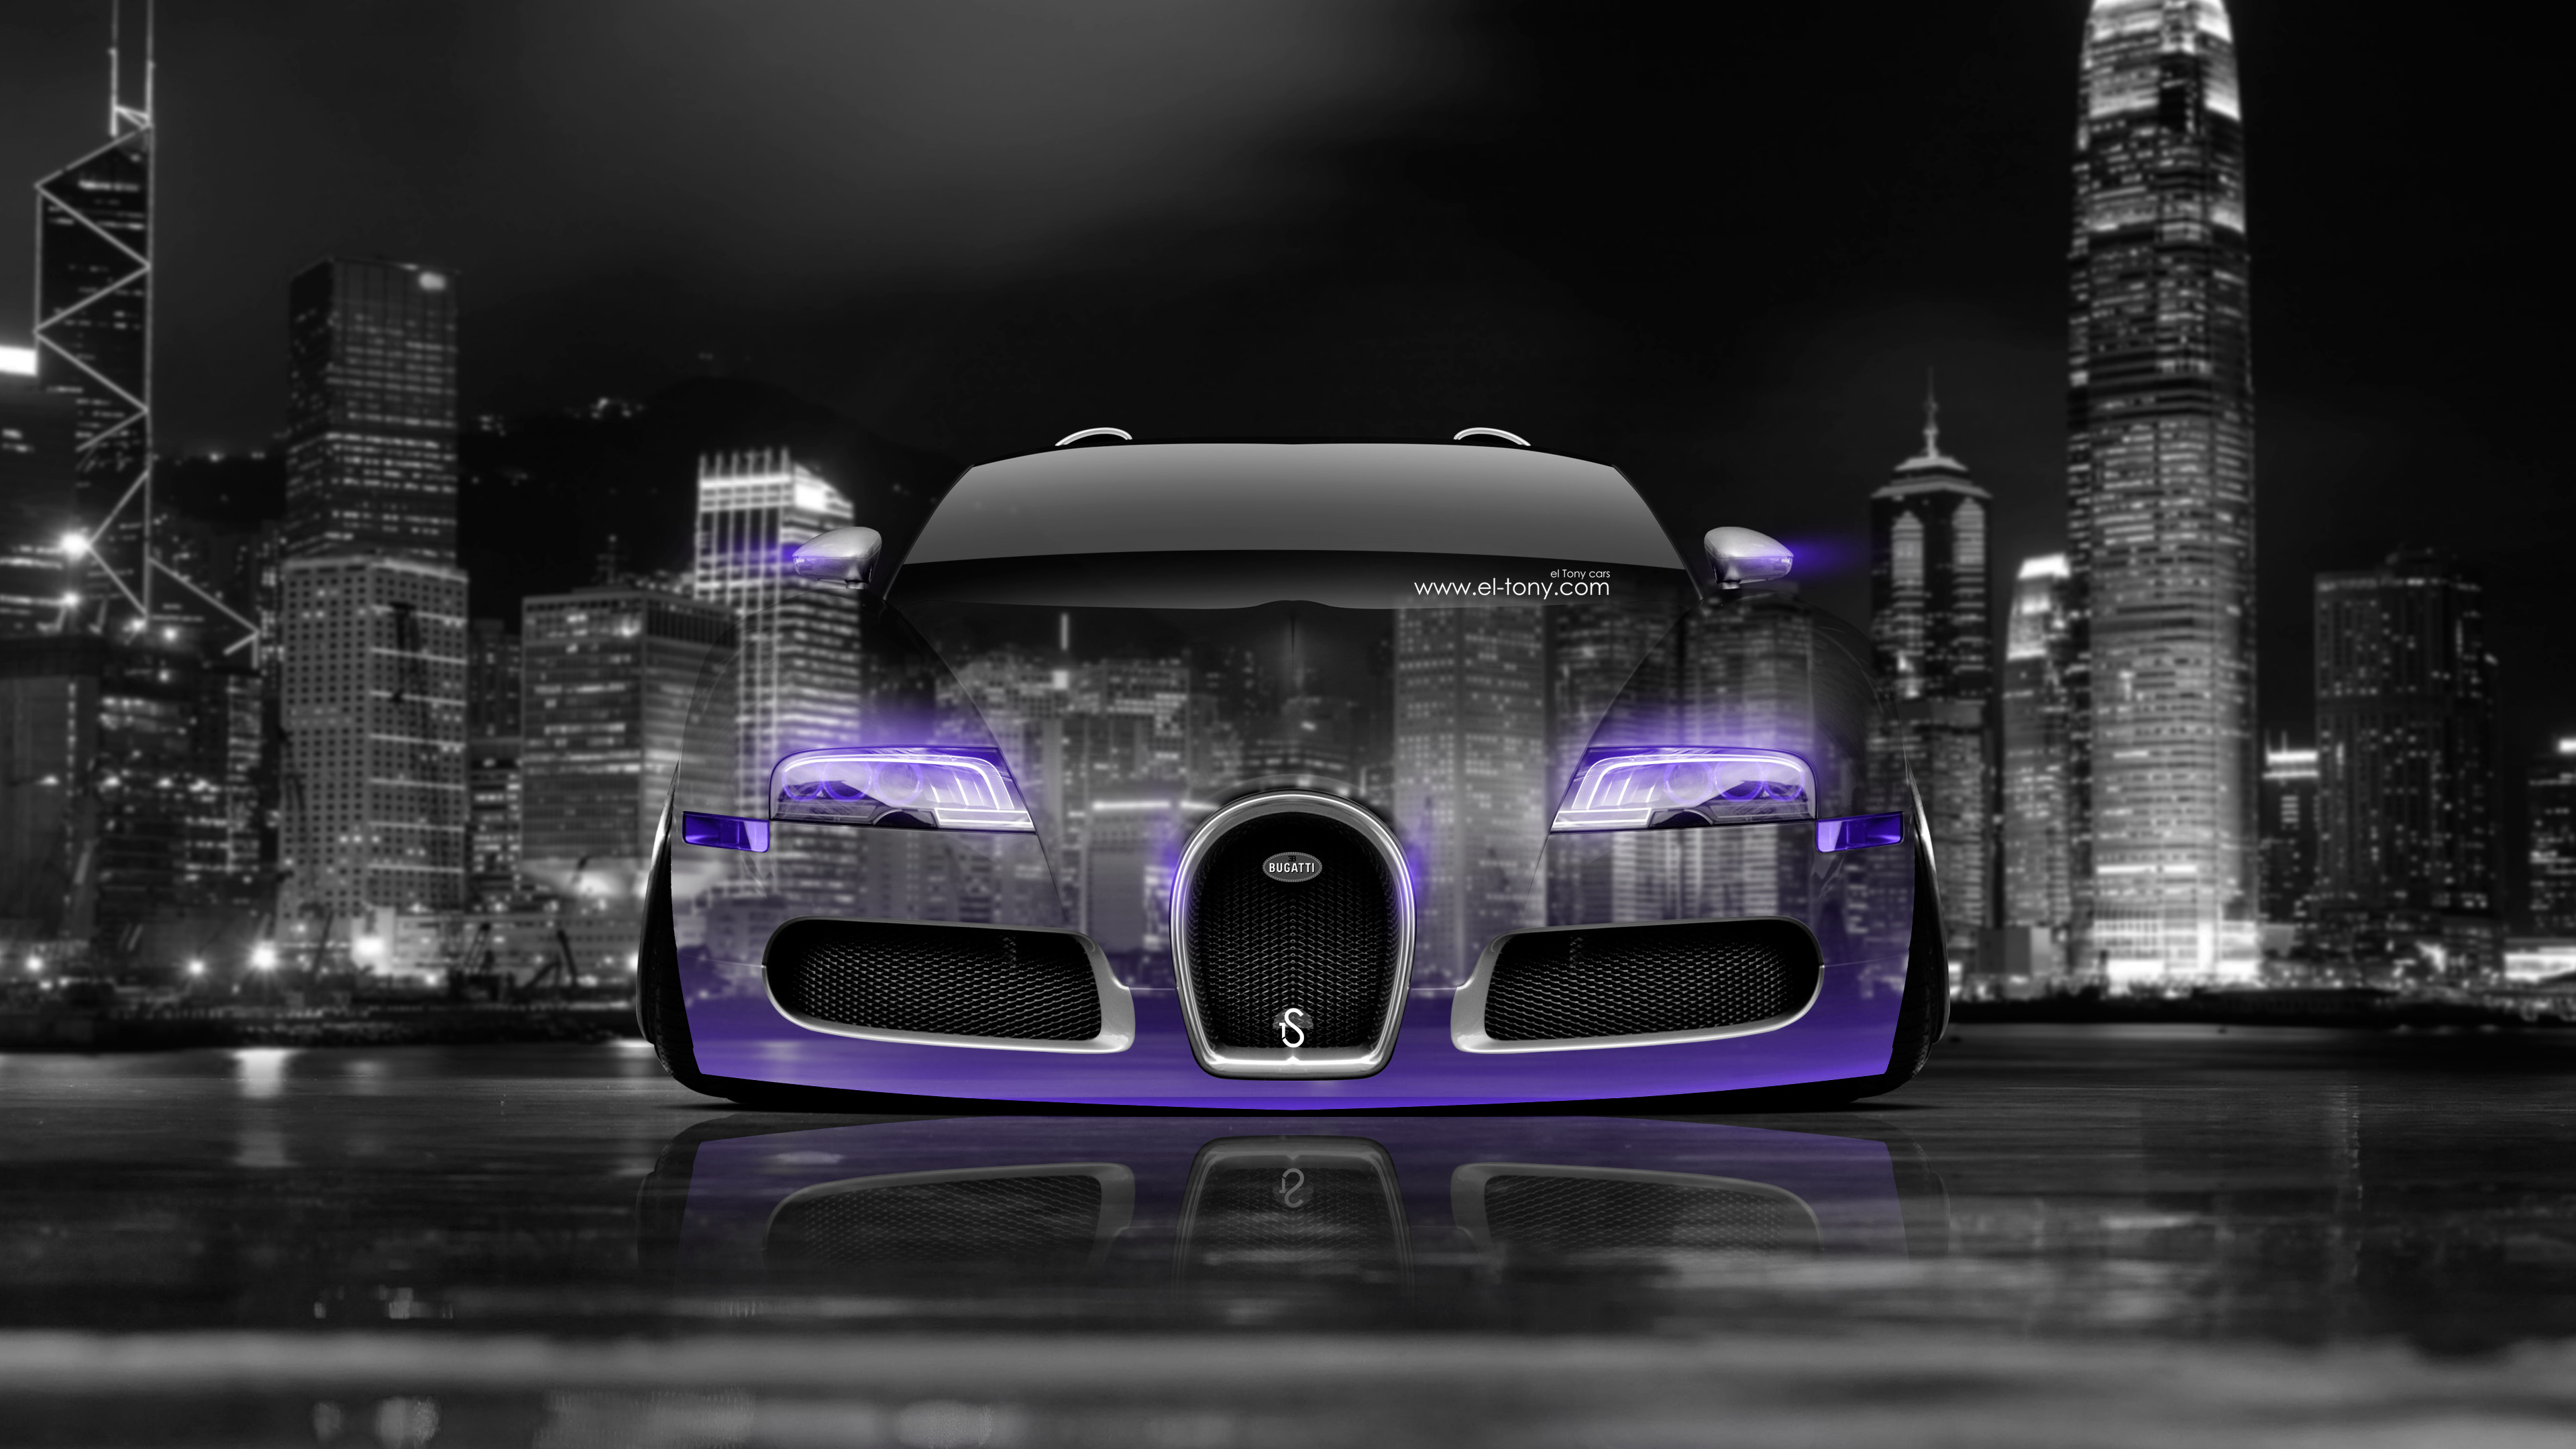 Charmant 4K Wallpapers Bugatti Veyron Front Crystal City Car 2014